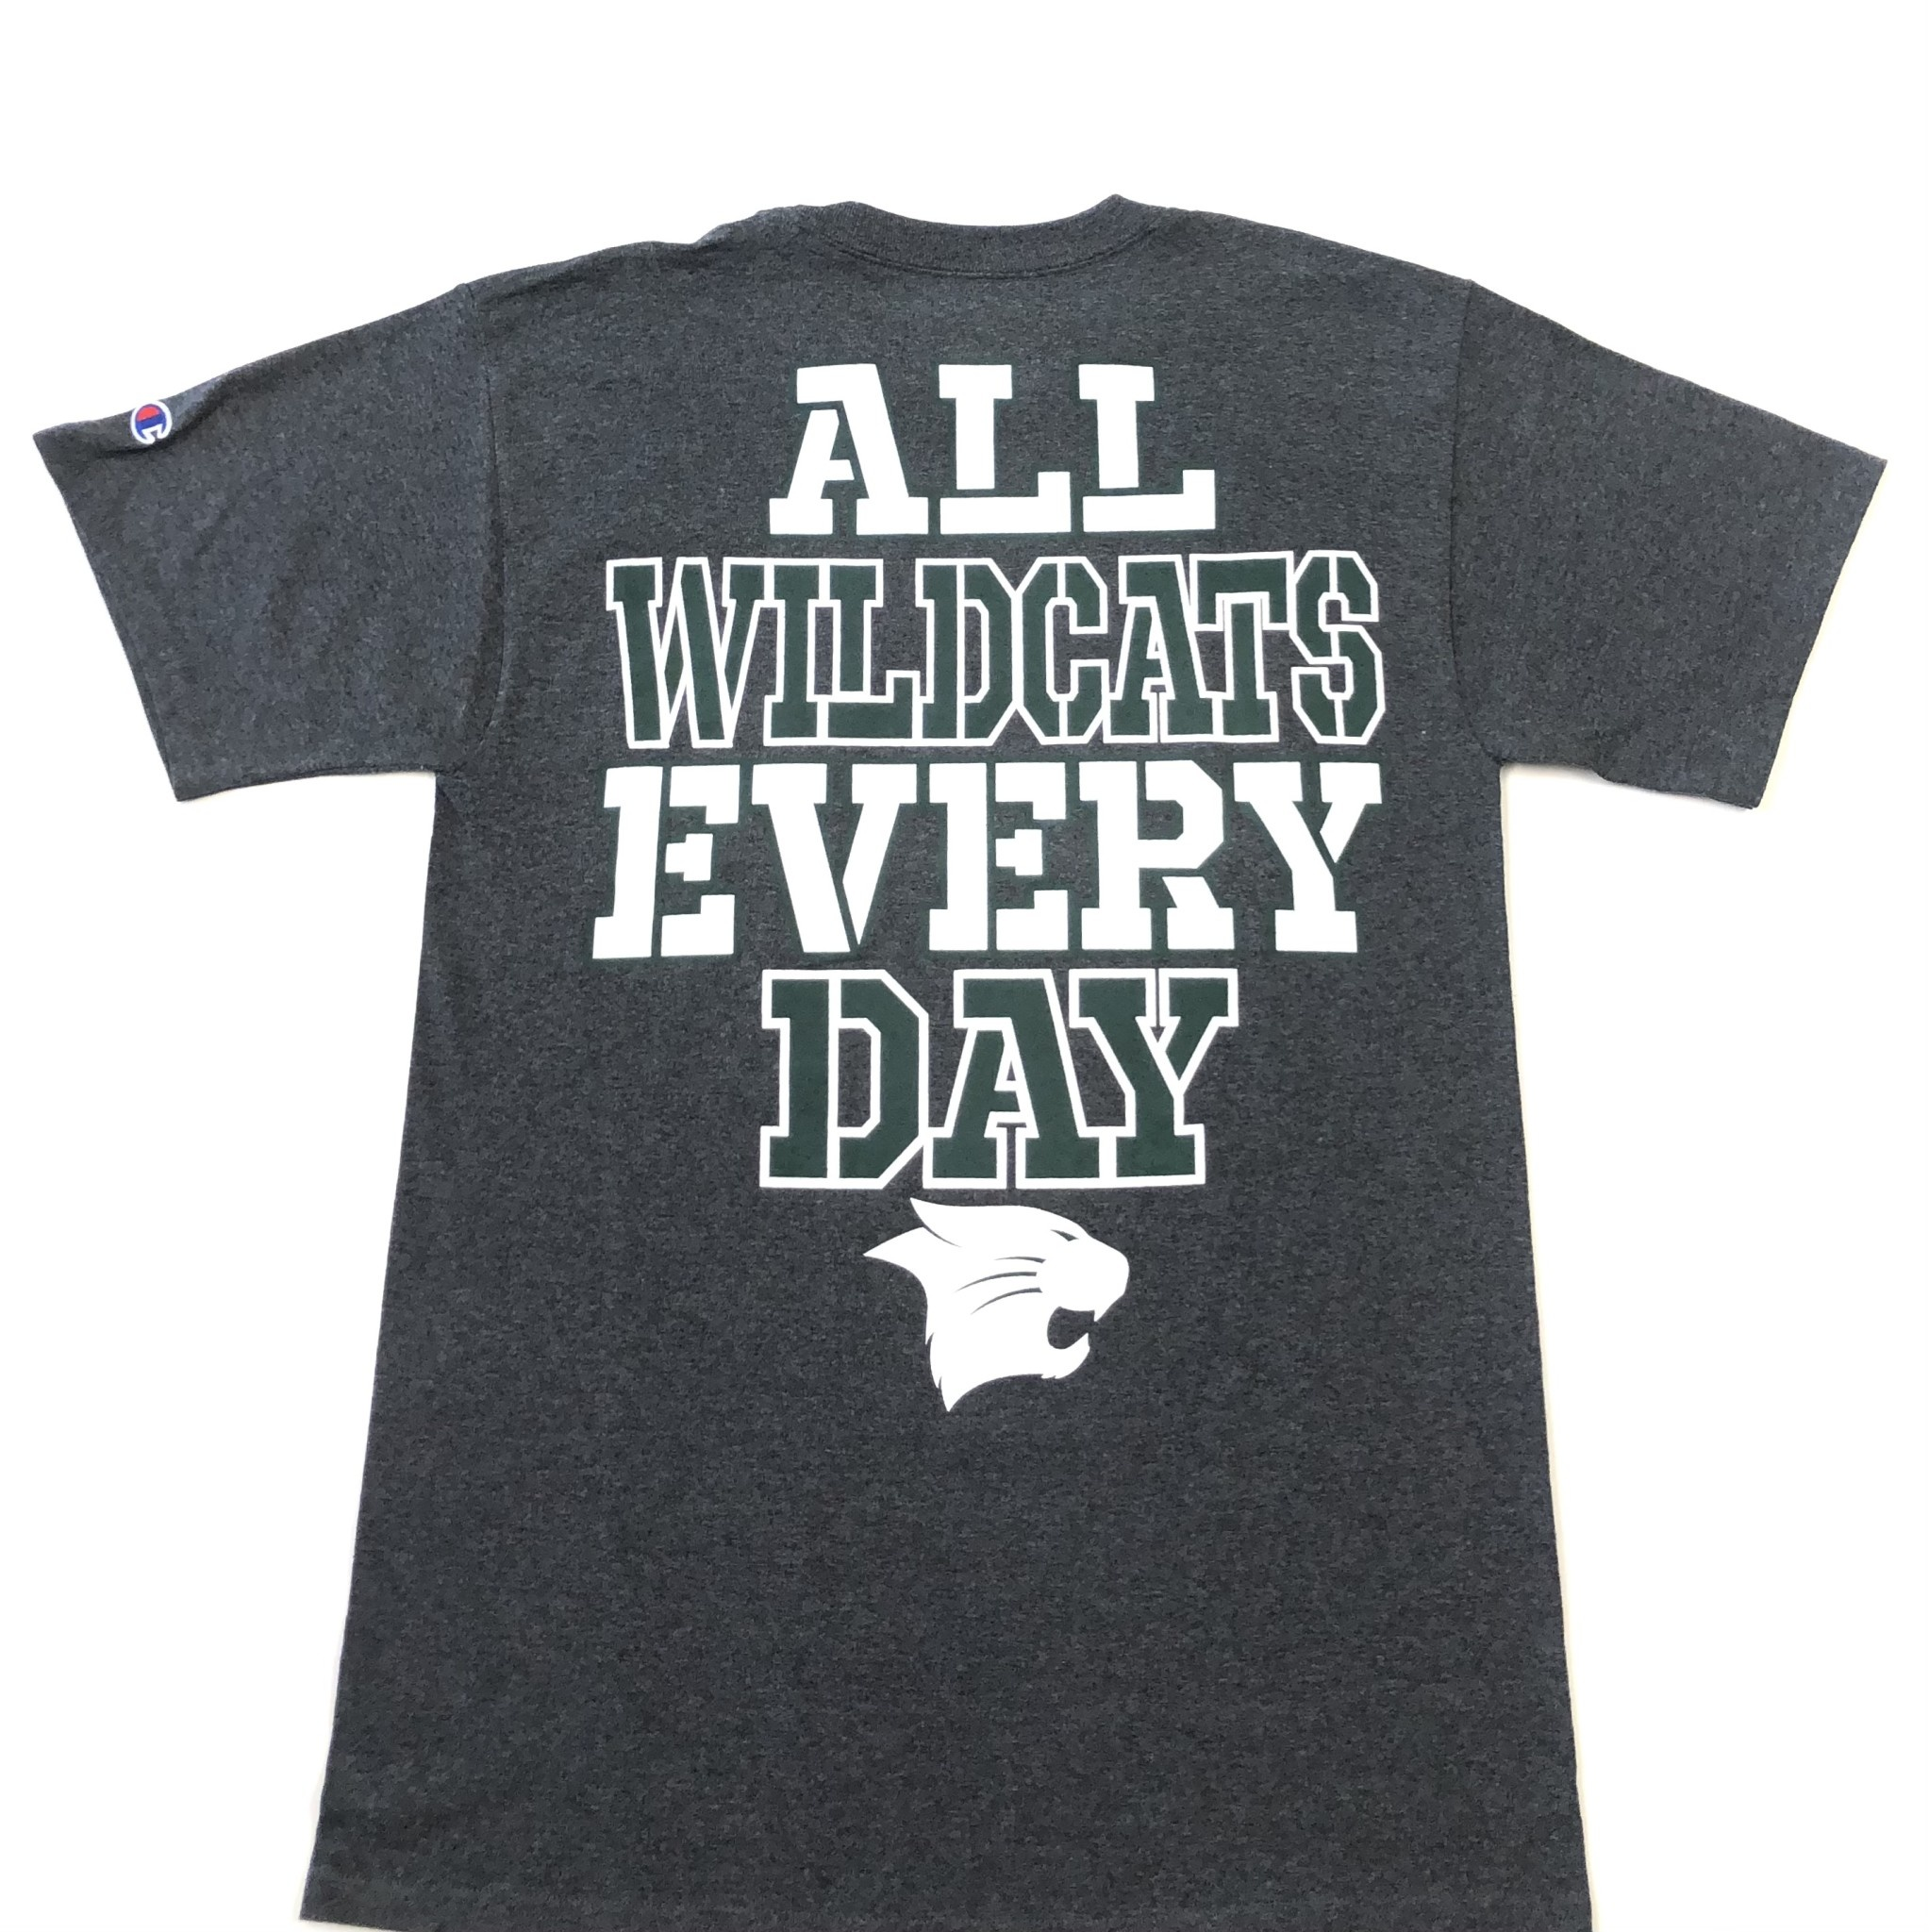 Champion T: Champion Granite Heather All Wildcats Every Day